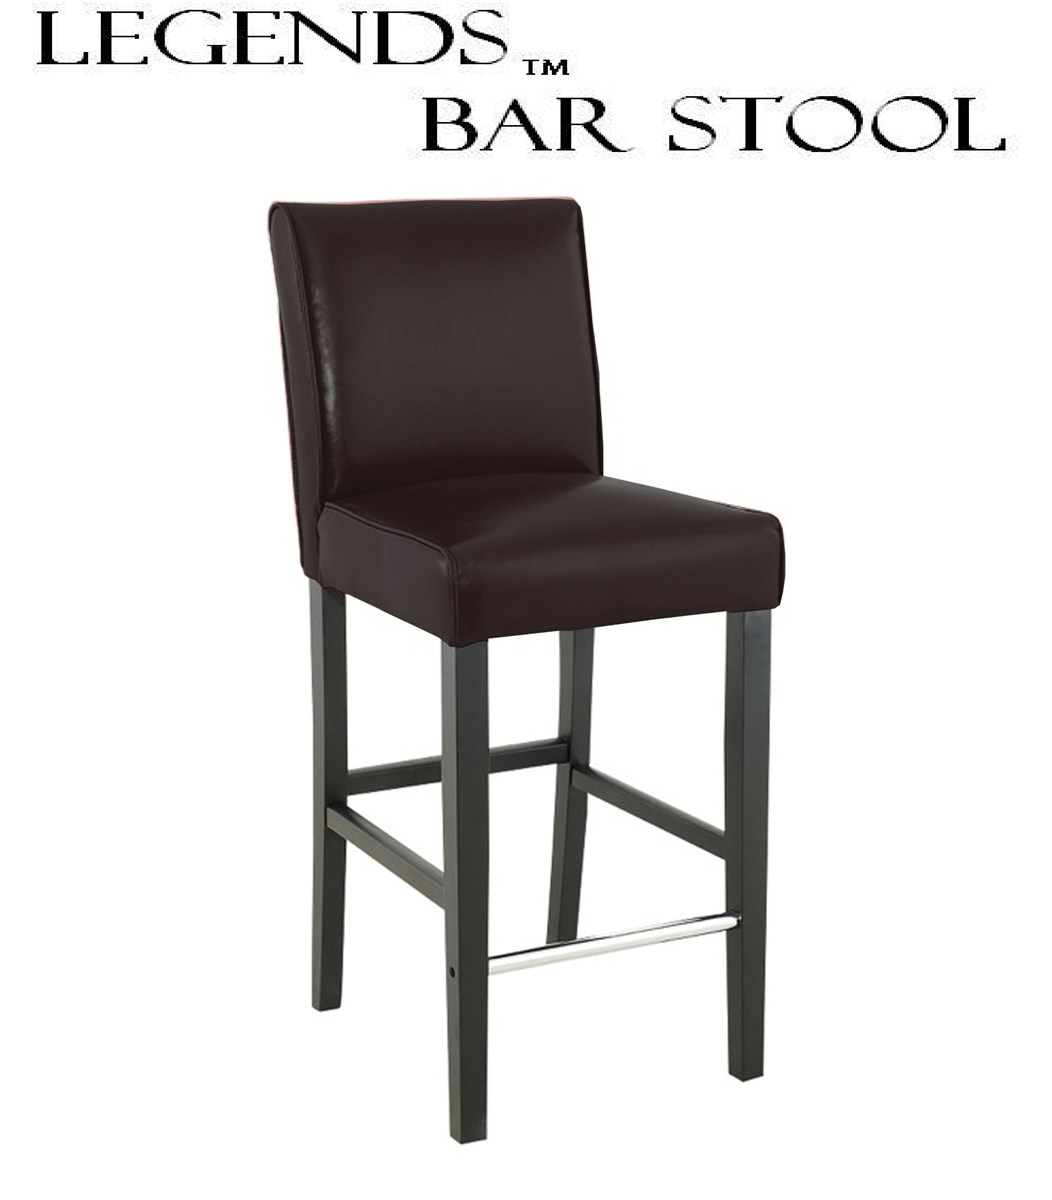 Stupendous Legends Modern Parsons 30 Bar Stool Pabps2019 Chair Design Images Pabps2019Com